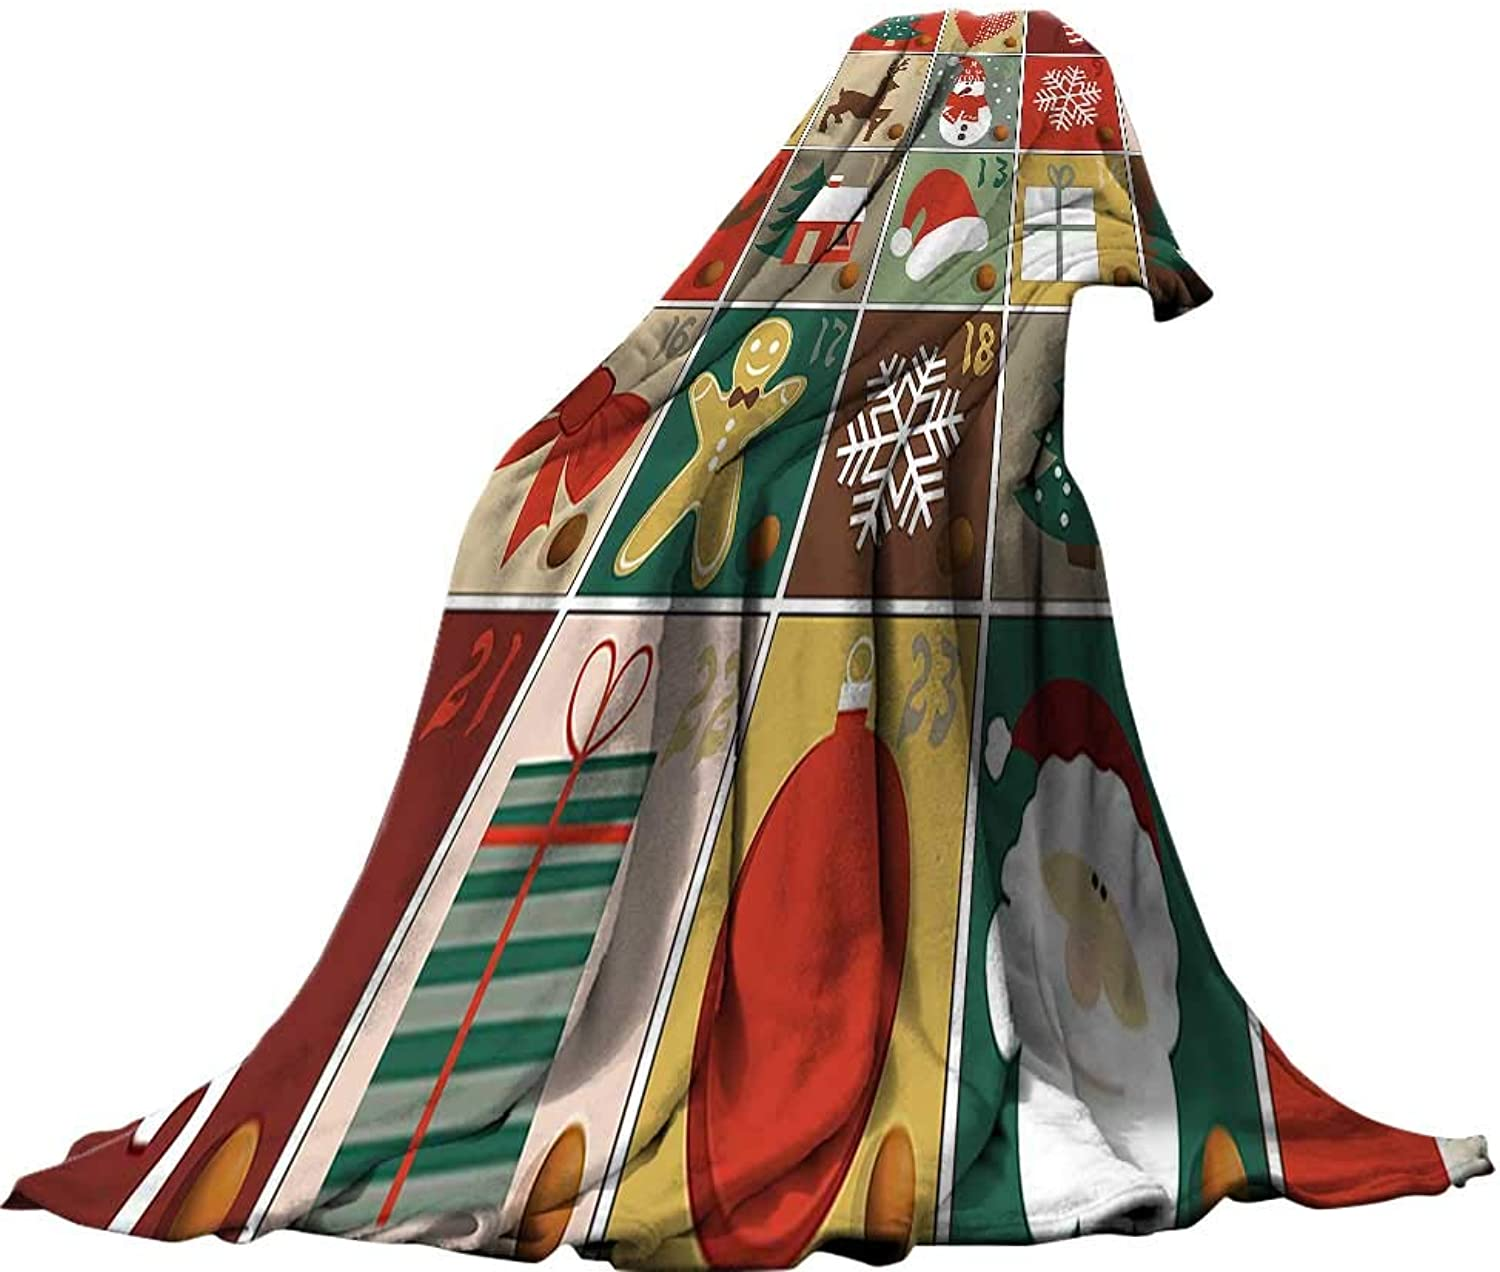 QINYAN-Home for Kids(62 x60 ) Summer Quilt Comforter Christmas Holiday Season Pattern with Santa Rudolf The Reindeer Gingerbread Man Candy Cane Snowflakes ES Multi.